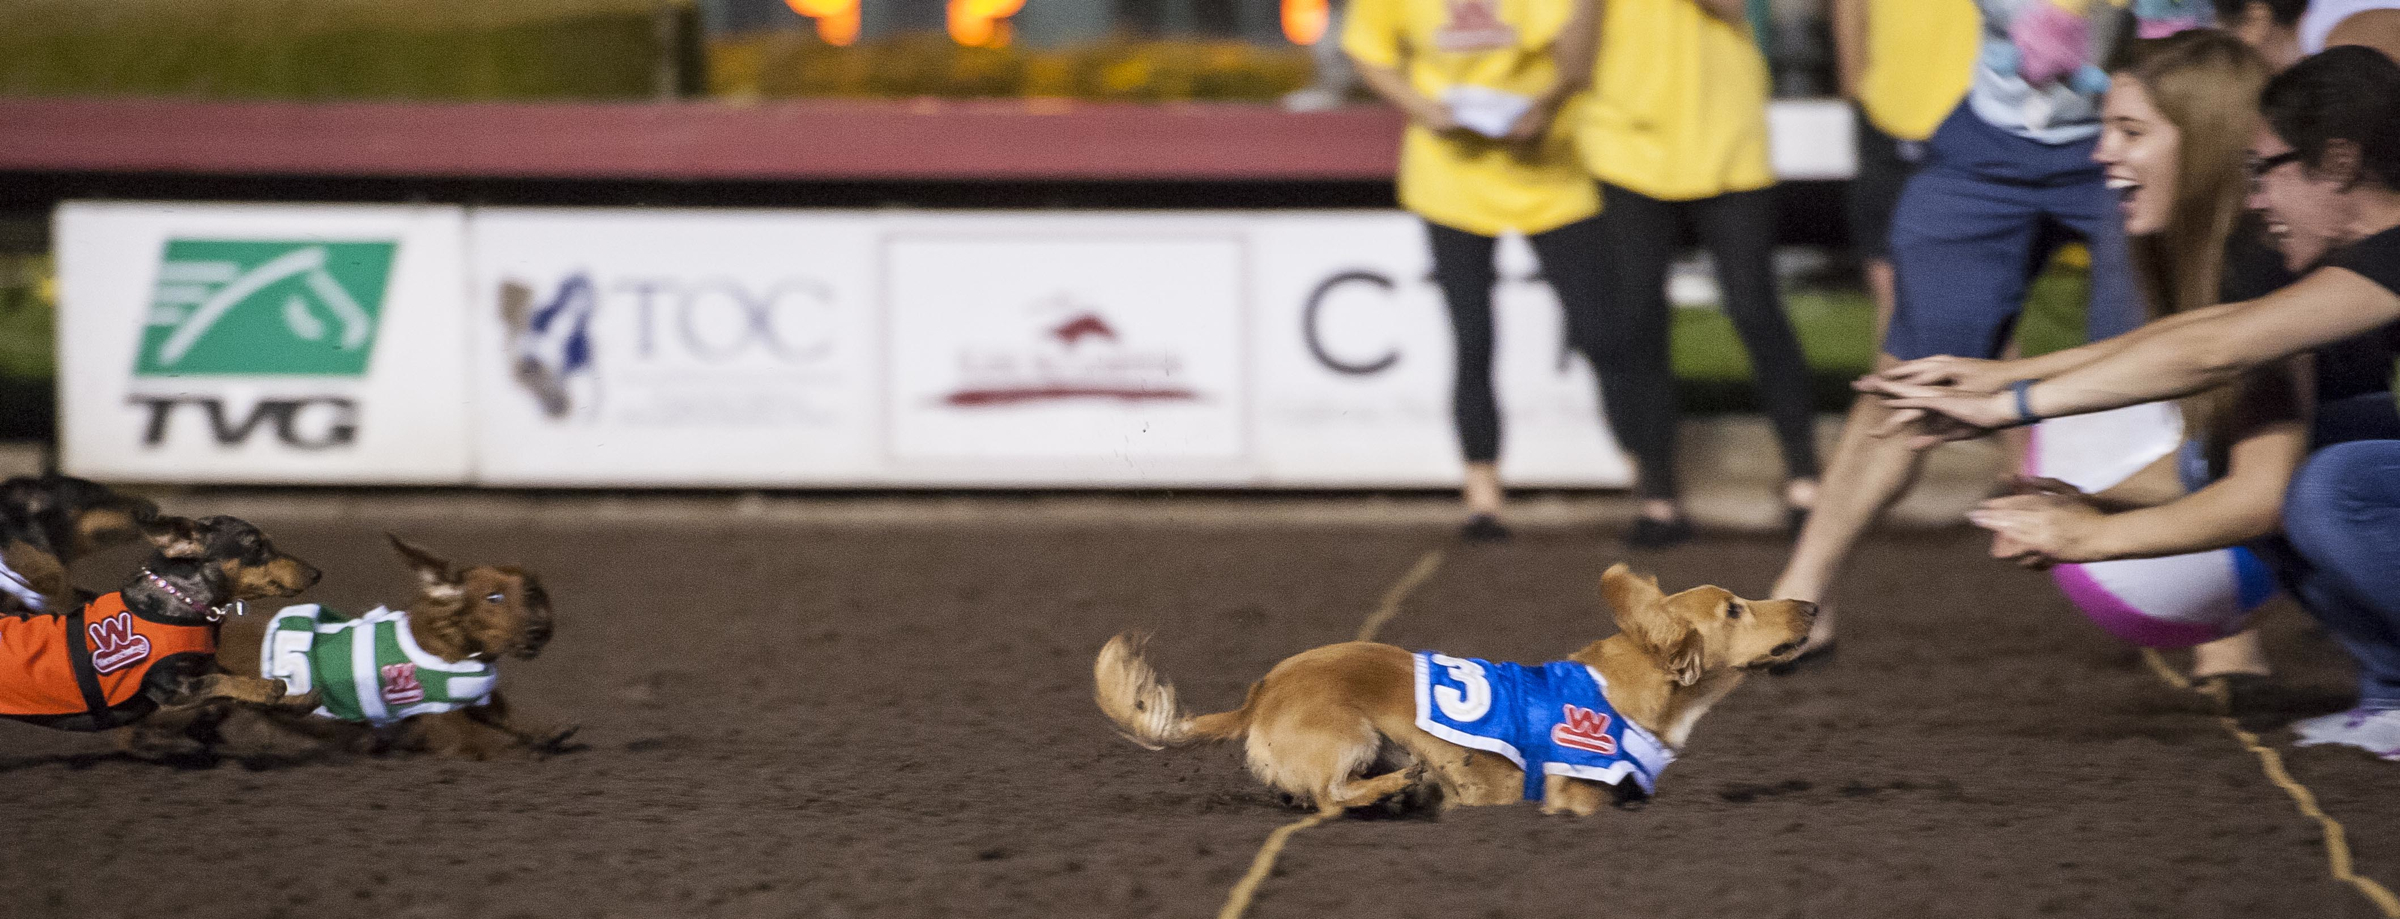 Finn races in the 2015 Wienerschnitzel Wiener Nationals at Los Alamitos Race Course. Finn won the 2015 title and is looking to get back on top in 2018. Photo: Courtesy